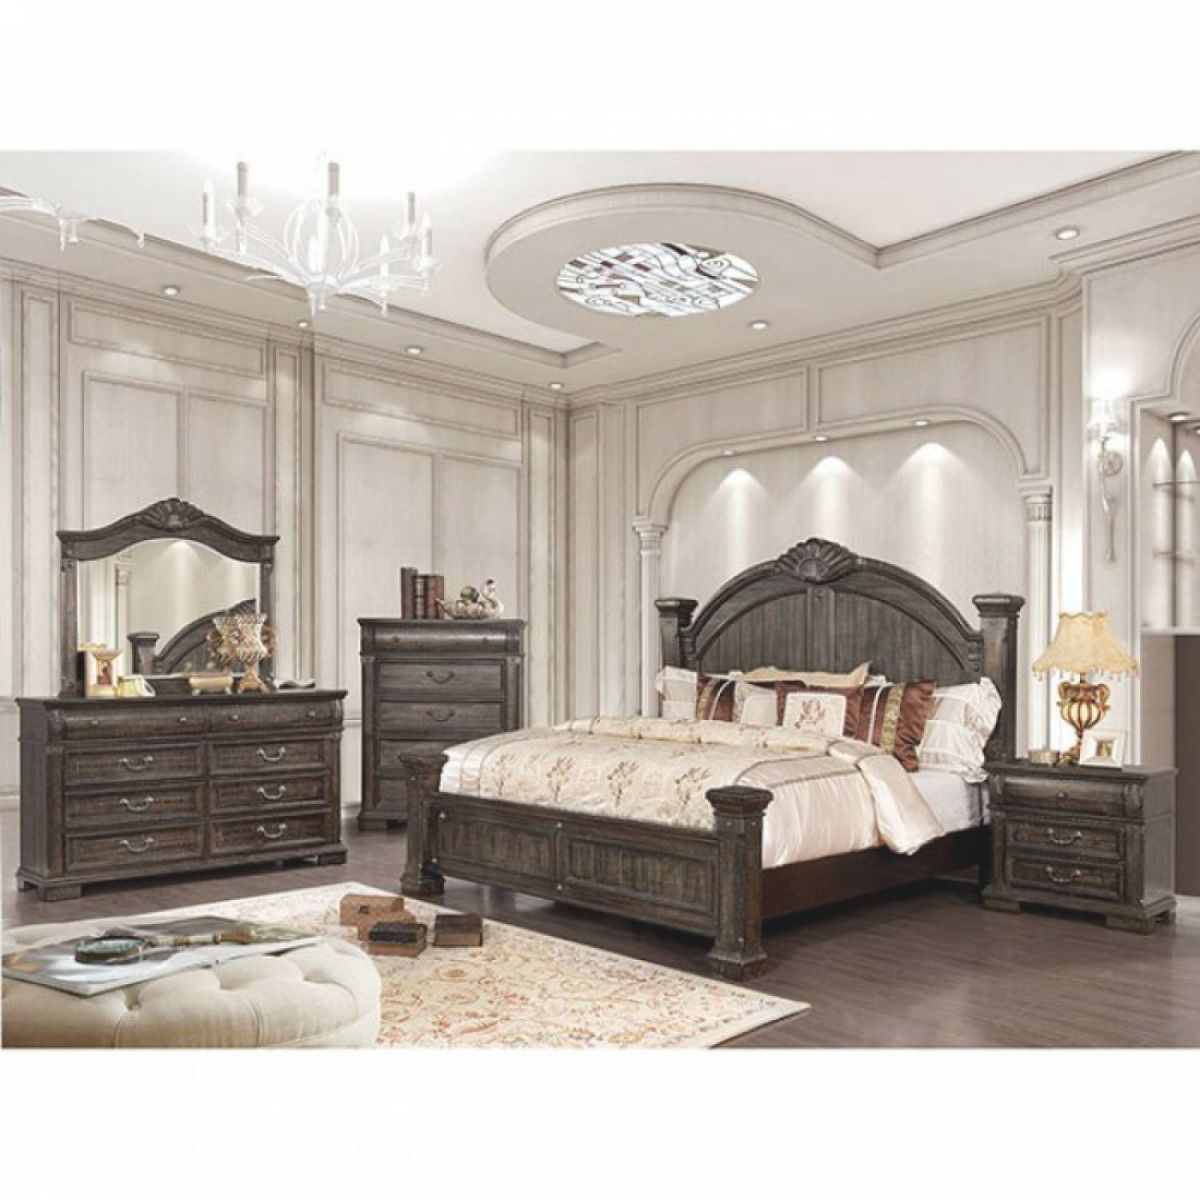 Genevieve Cal.king Bedroom Set Cm7428Kw-Gr with regard to Bedroom Sets King